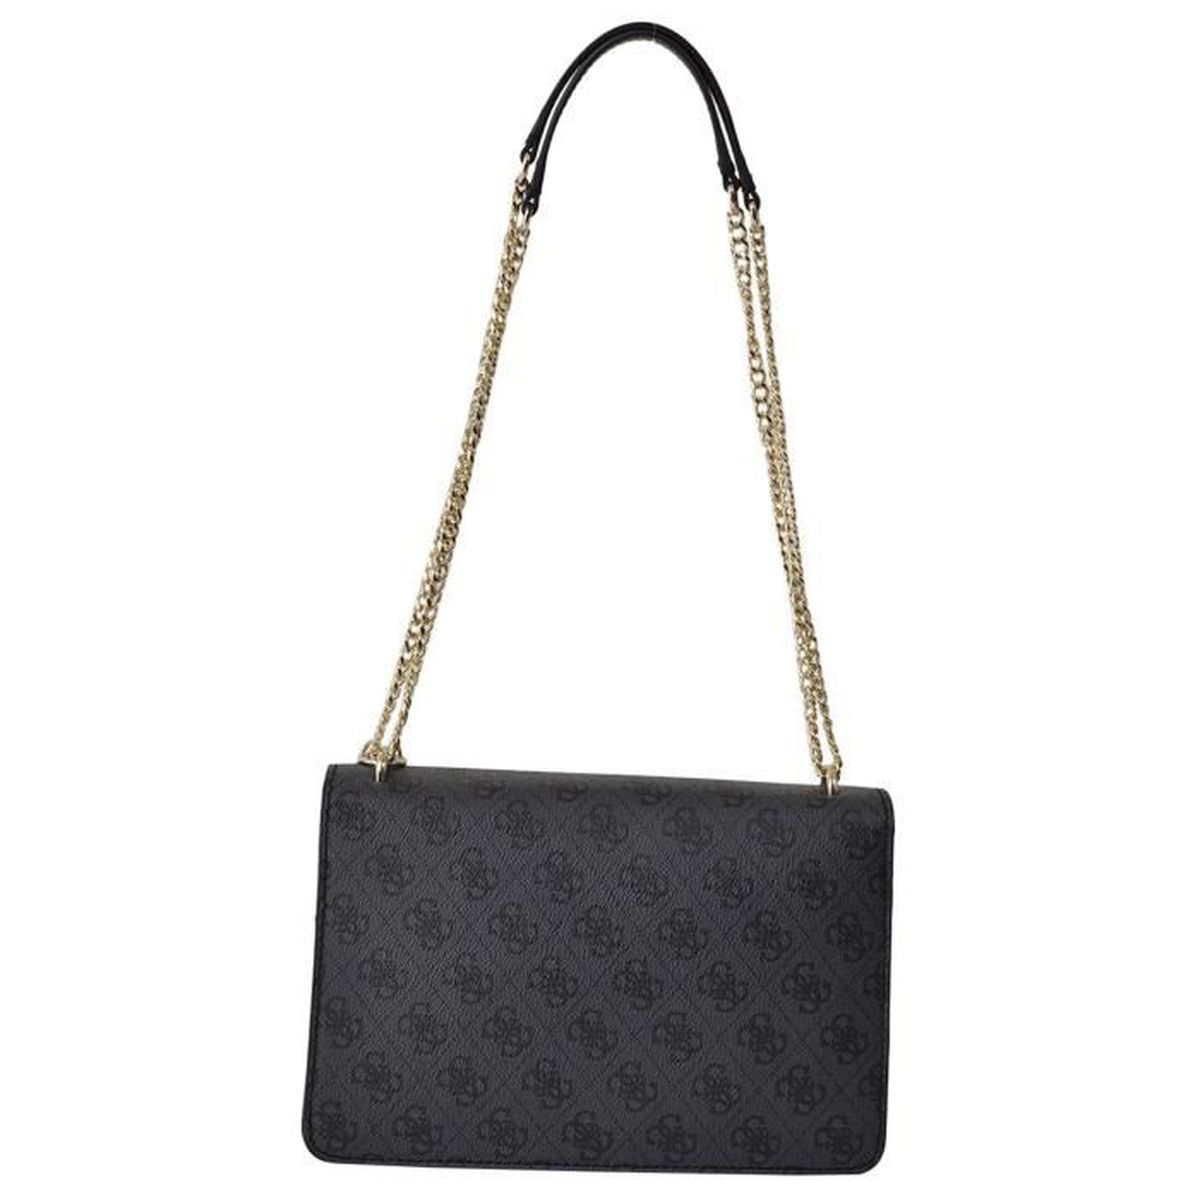 cde7f196b9 Sac bandoulière Guess Arianna Noir coal - Achat / Vente besace - sac  reporter 0190231002826 - Cdiscount